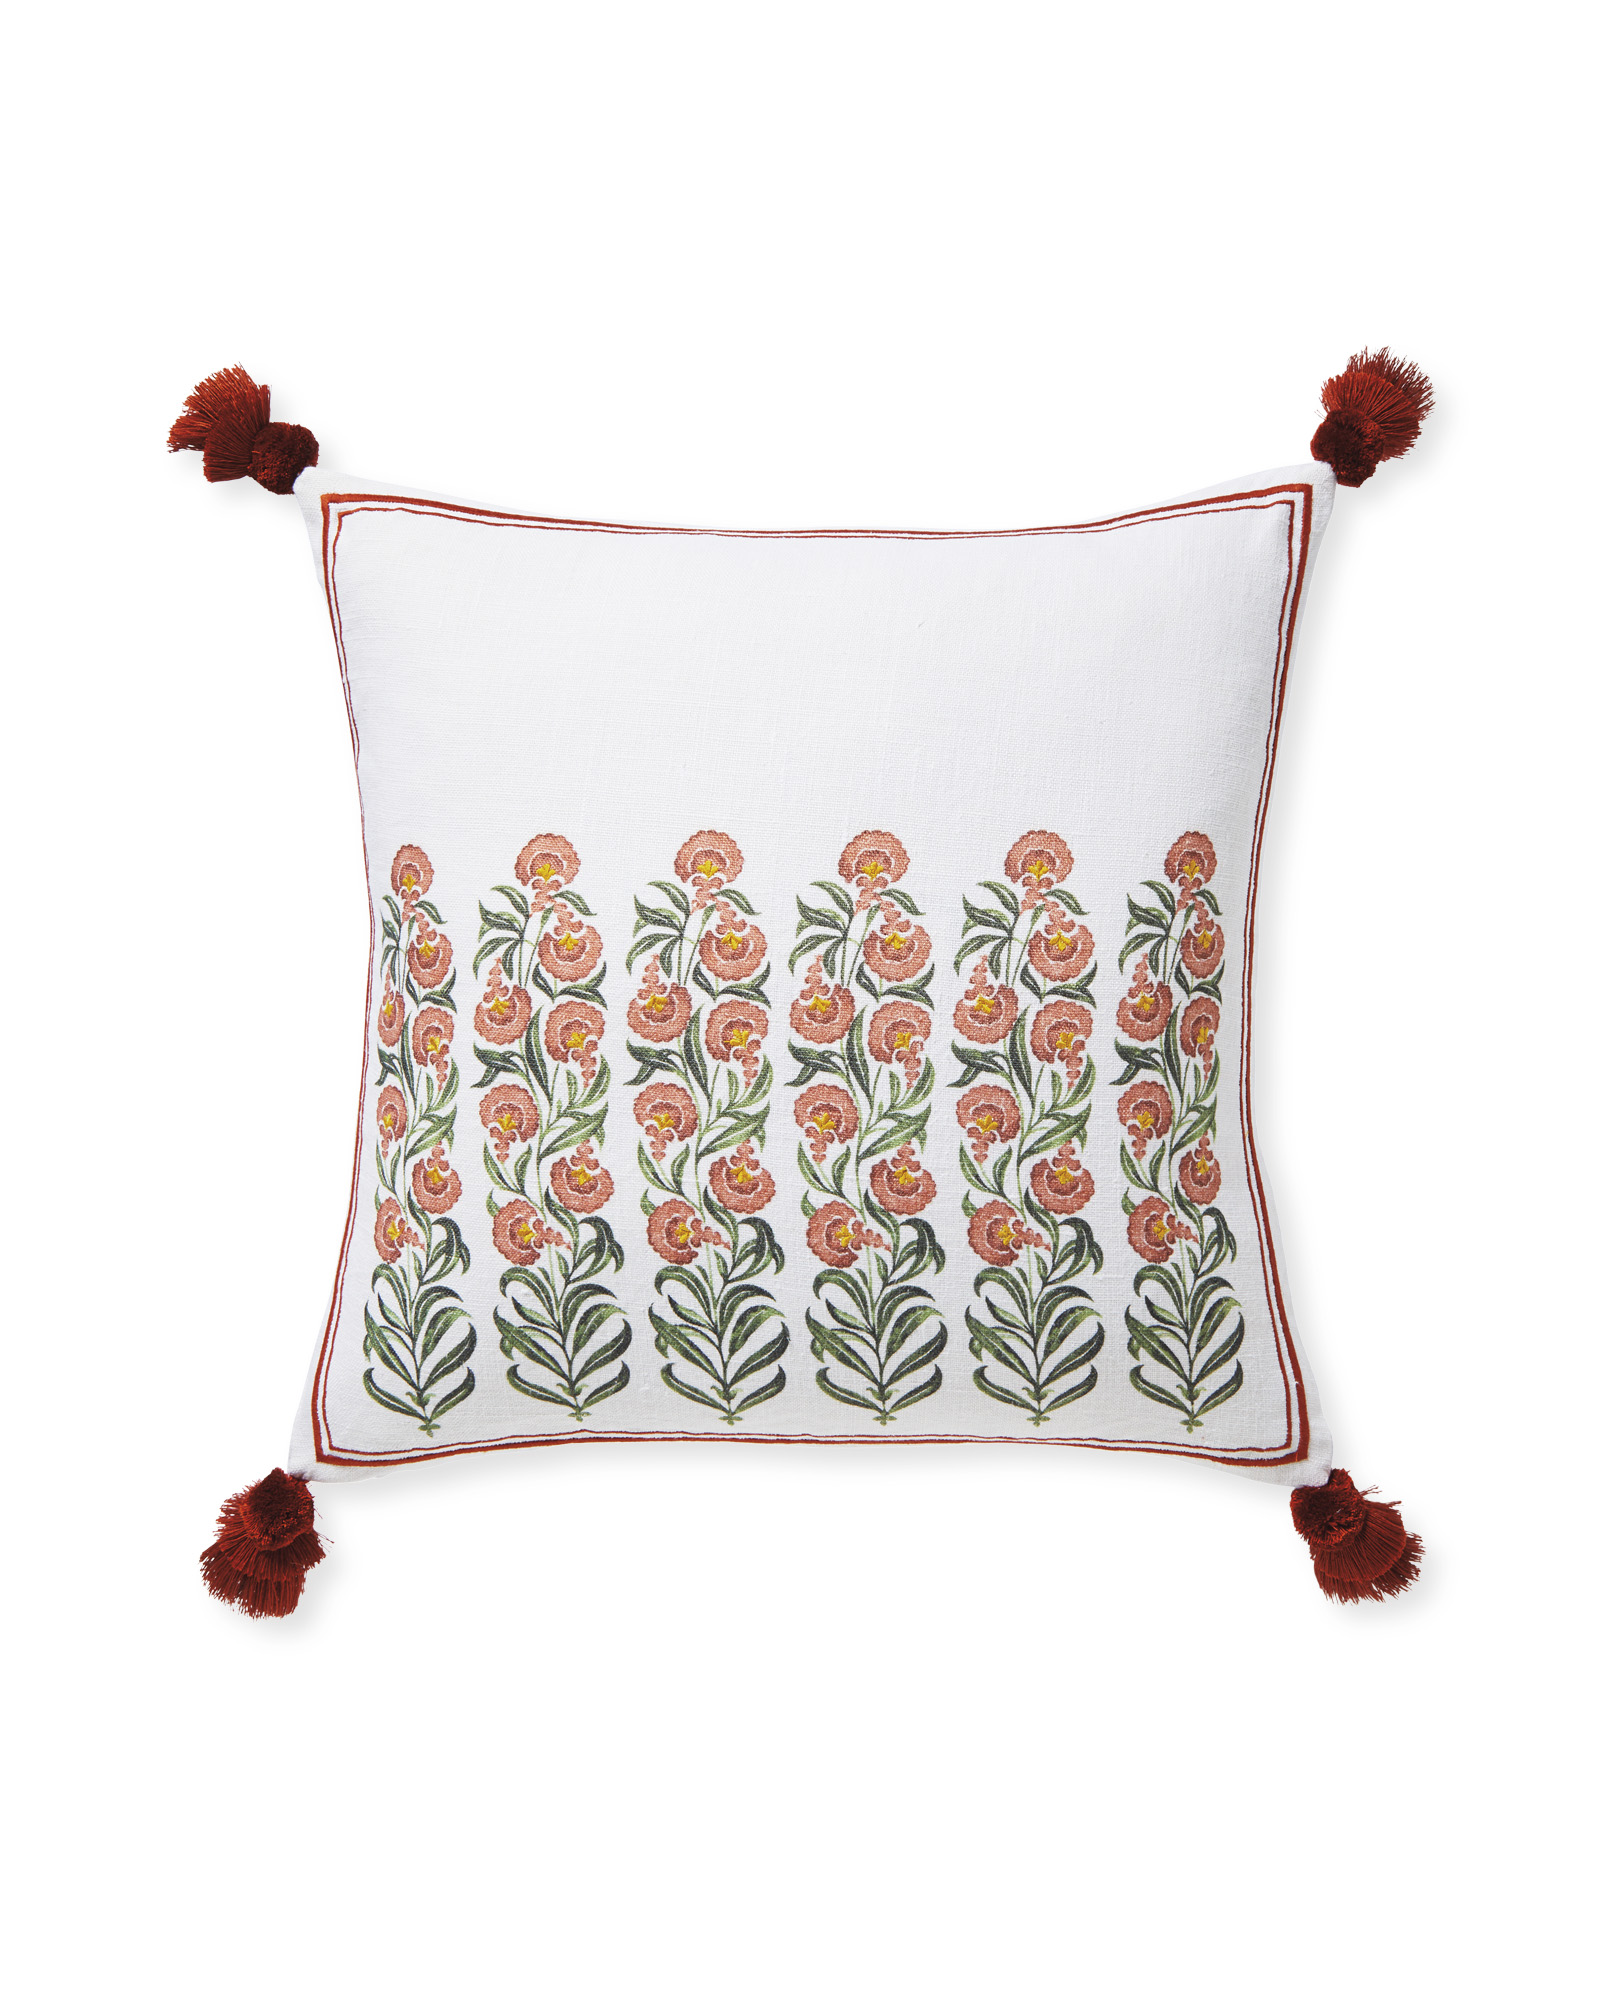 Millwood Pillow Cover, Terracotta/Evergreen